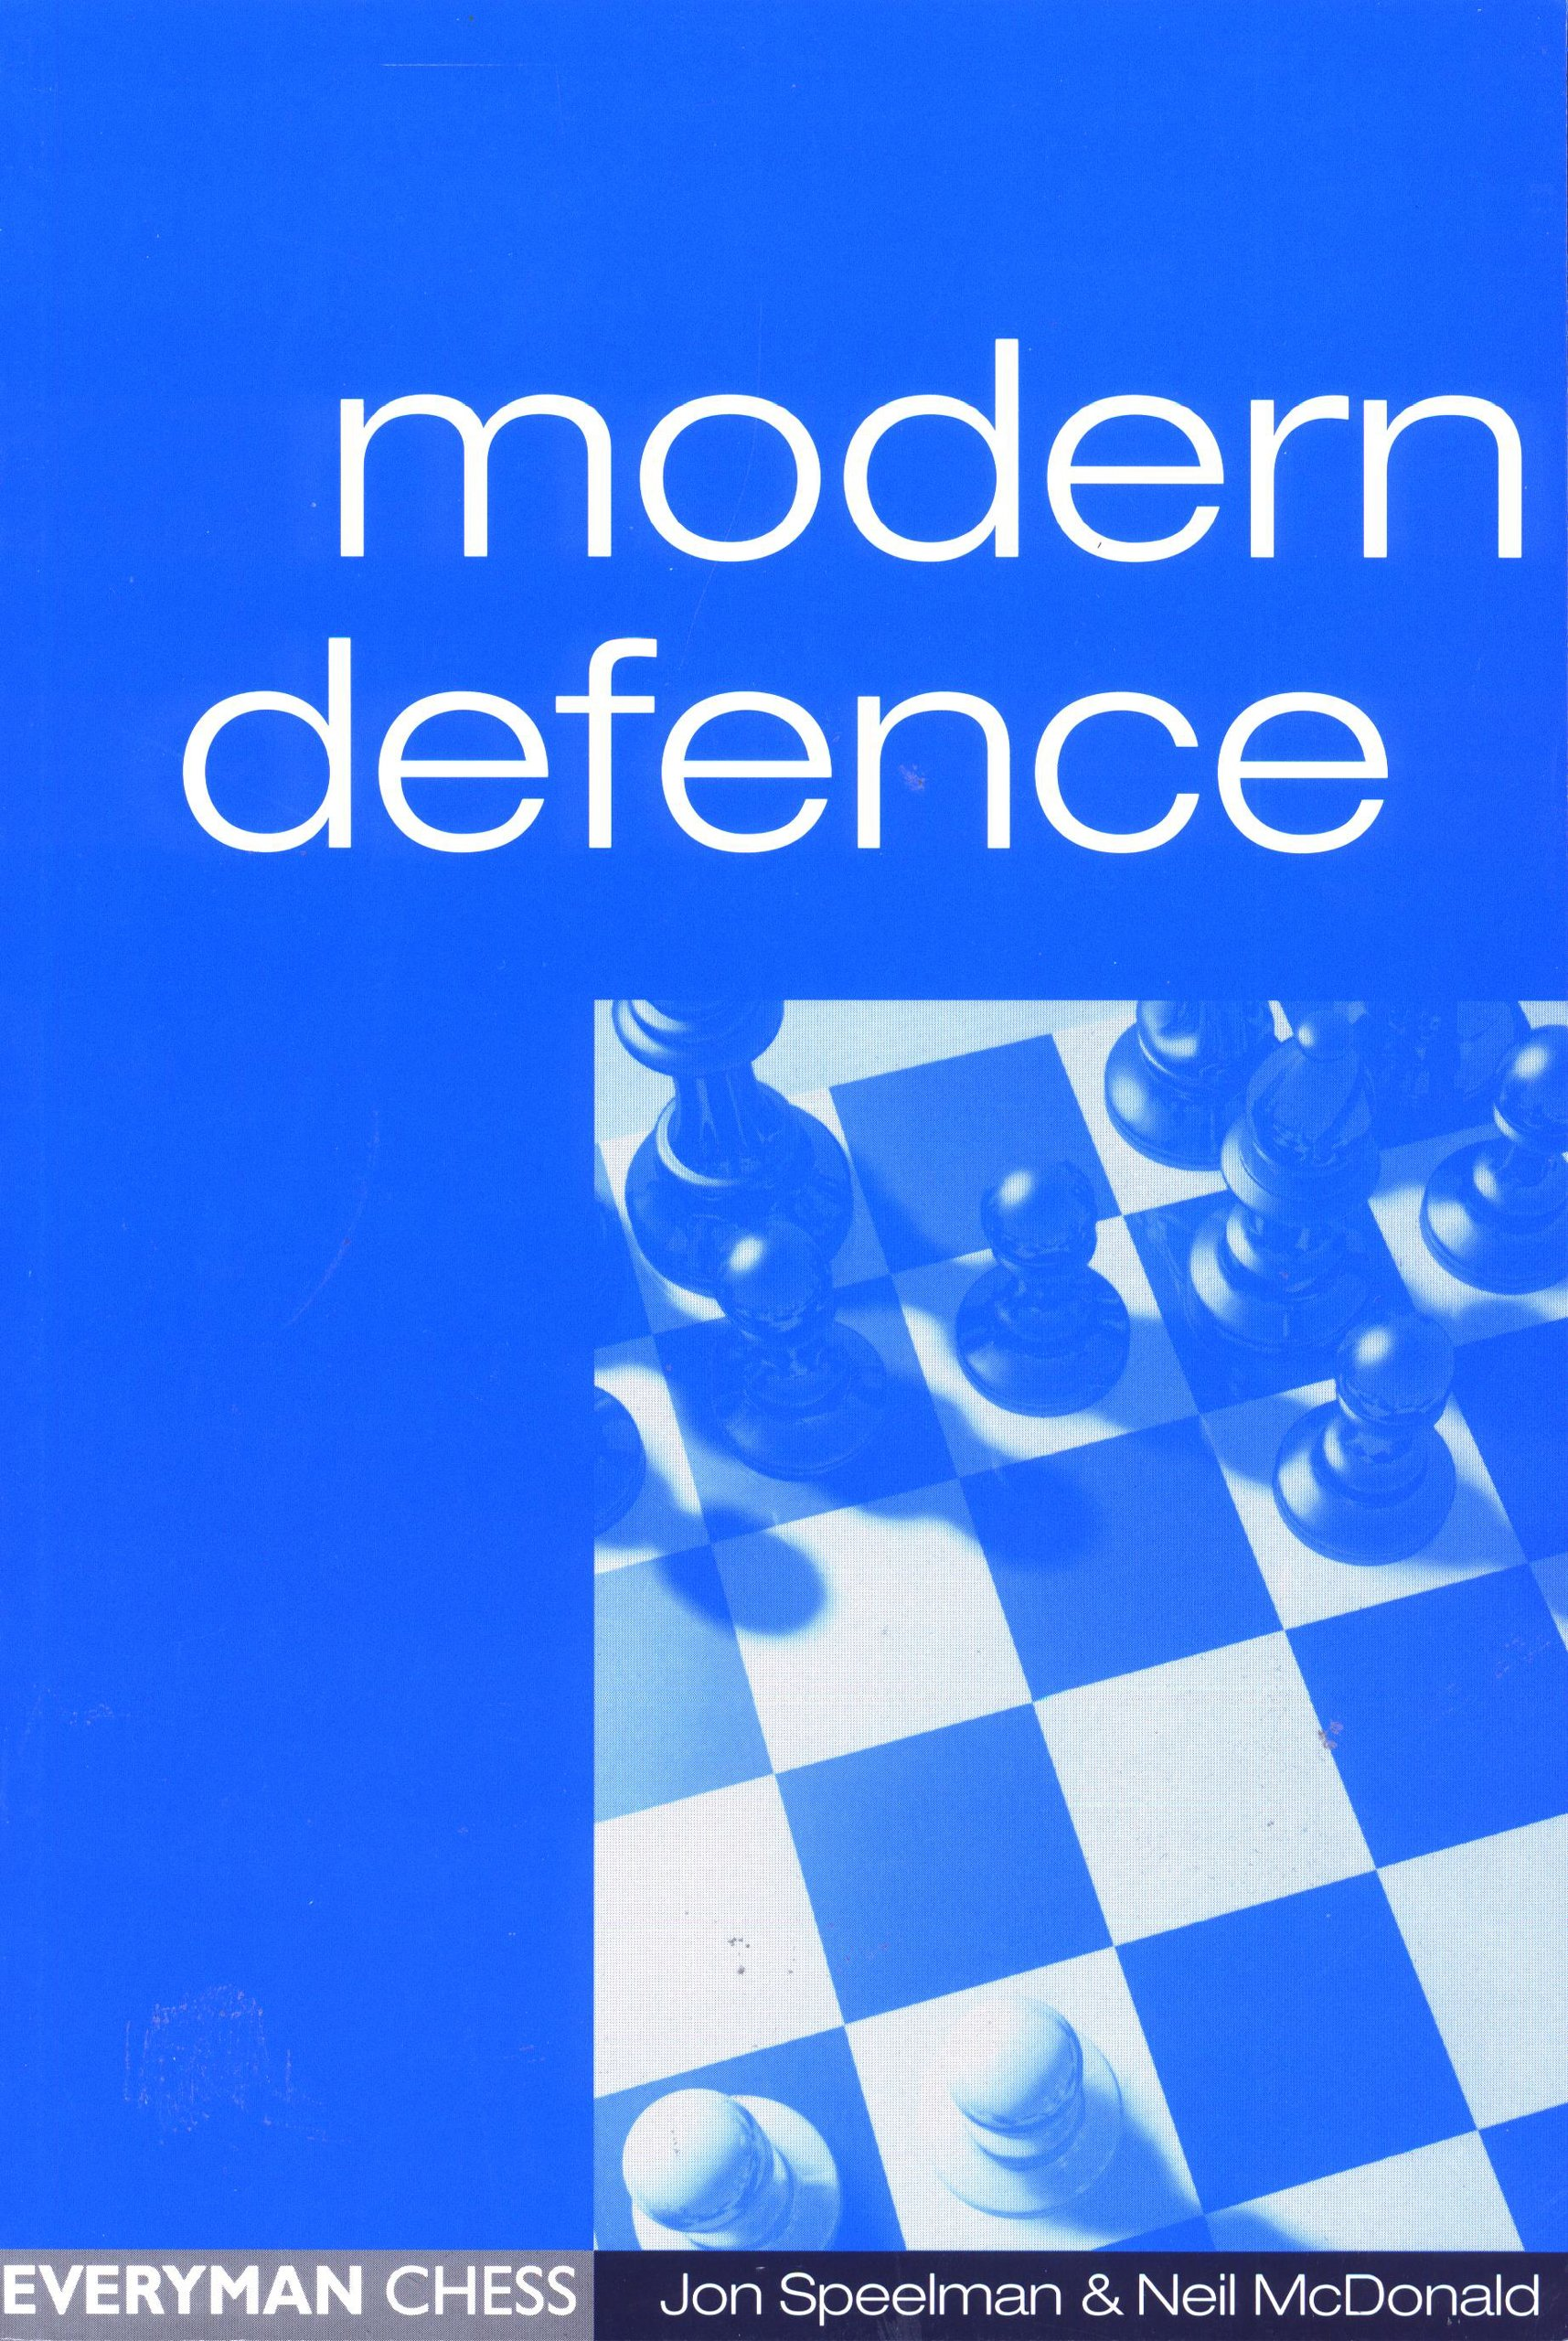 Modern Defence (Everyman Chess) download dree